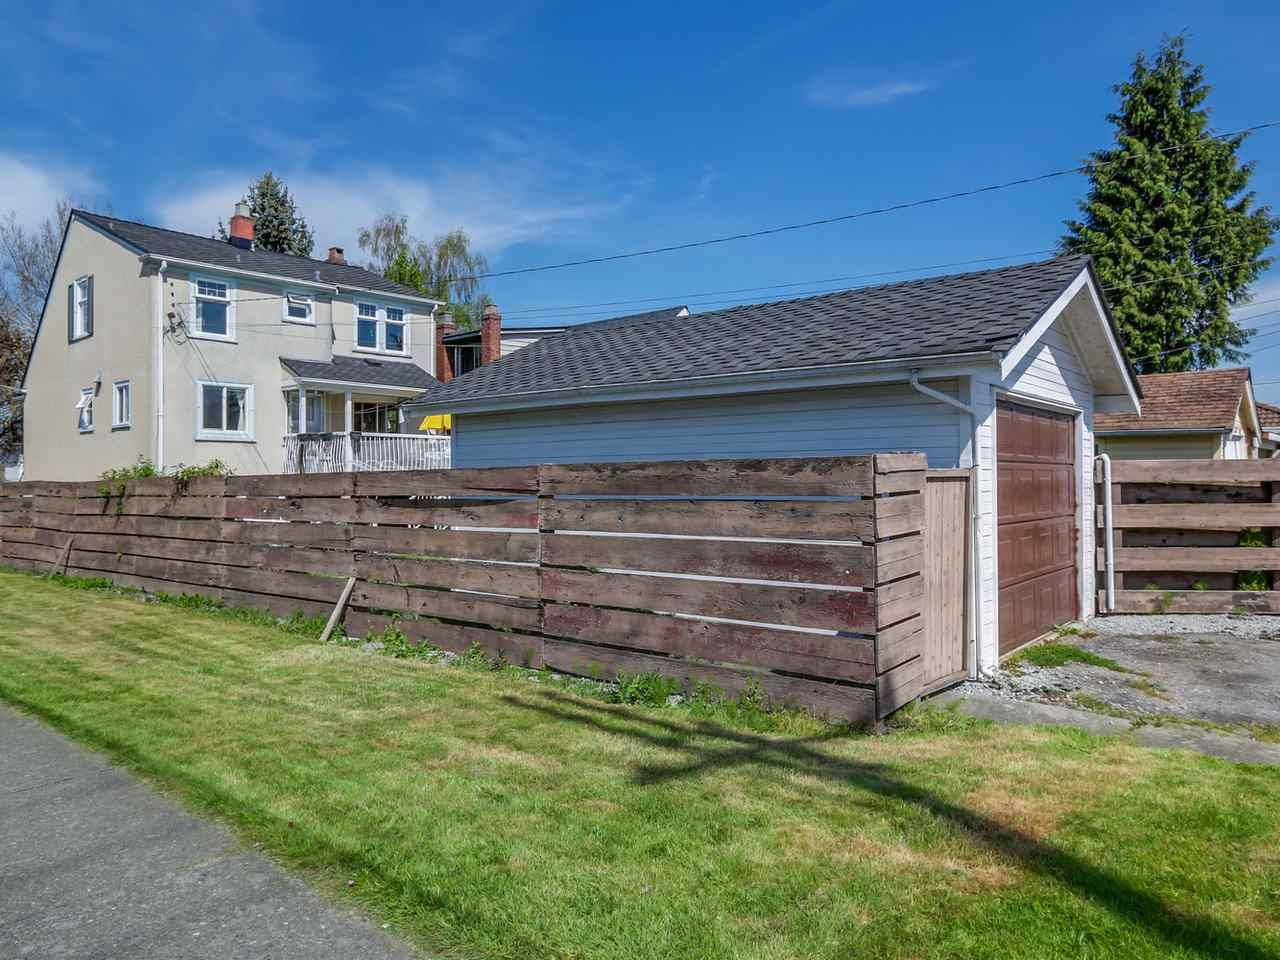 Photo 15: Photos: 2796 W 21ST Avenue in Vancouver: Arbutus House for sale (Vancouver West)  : MLS®# R2078868